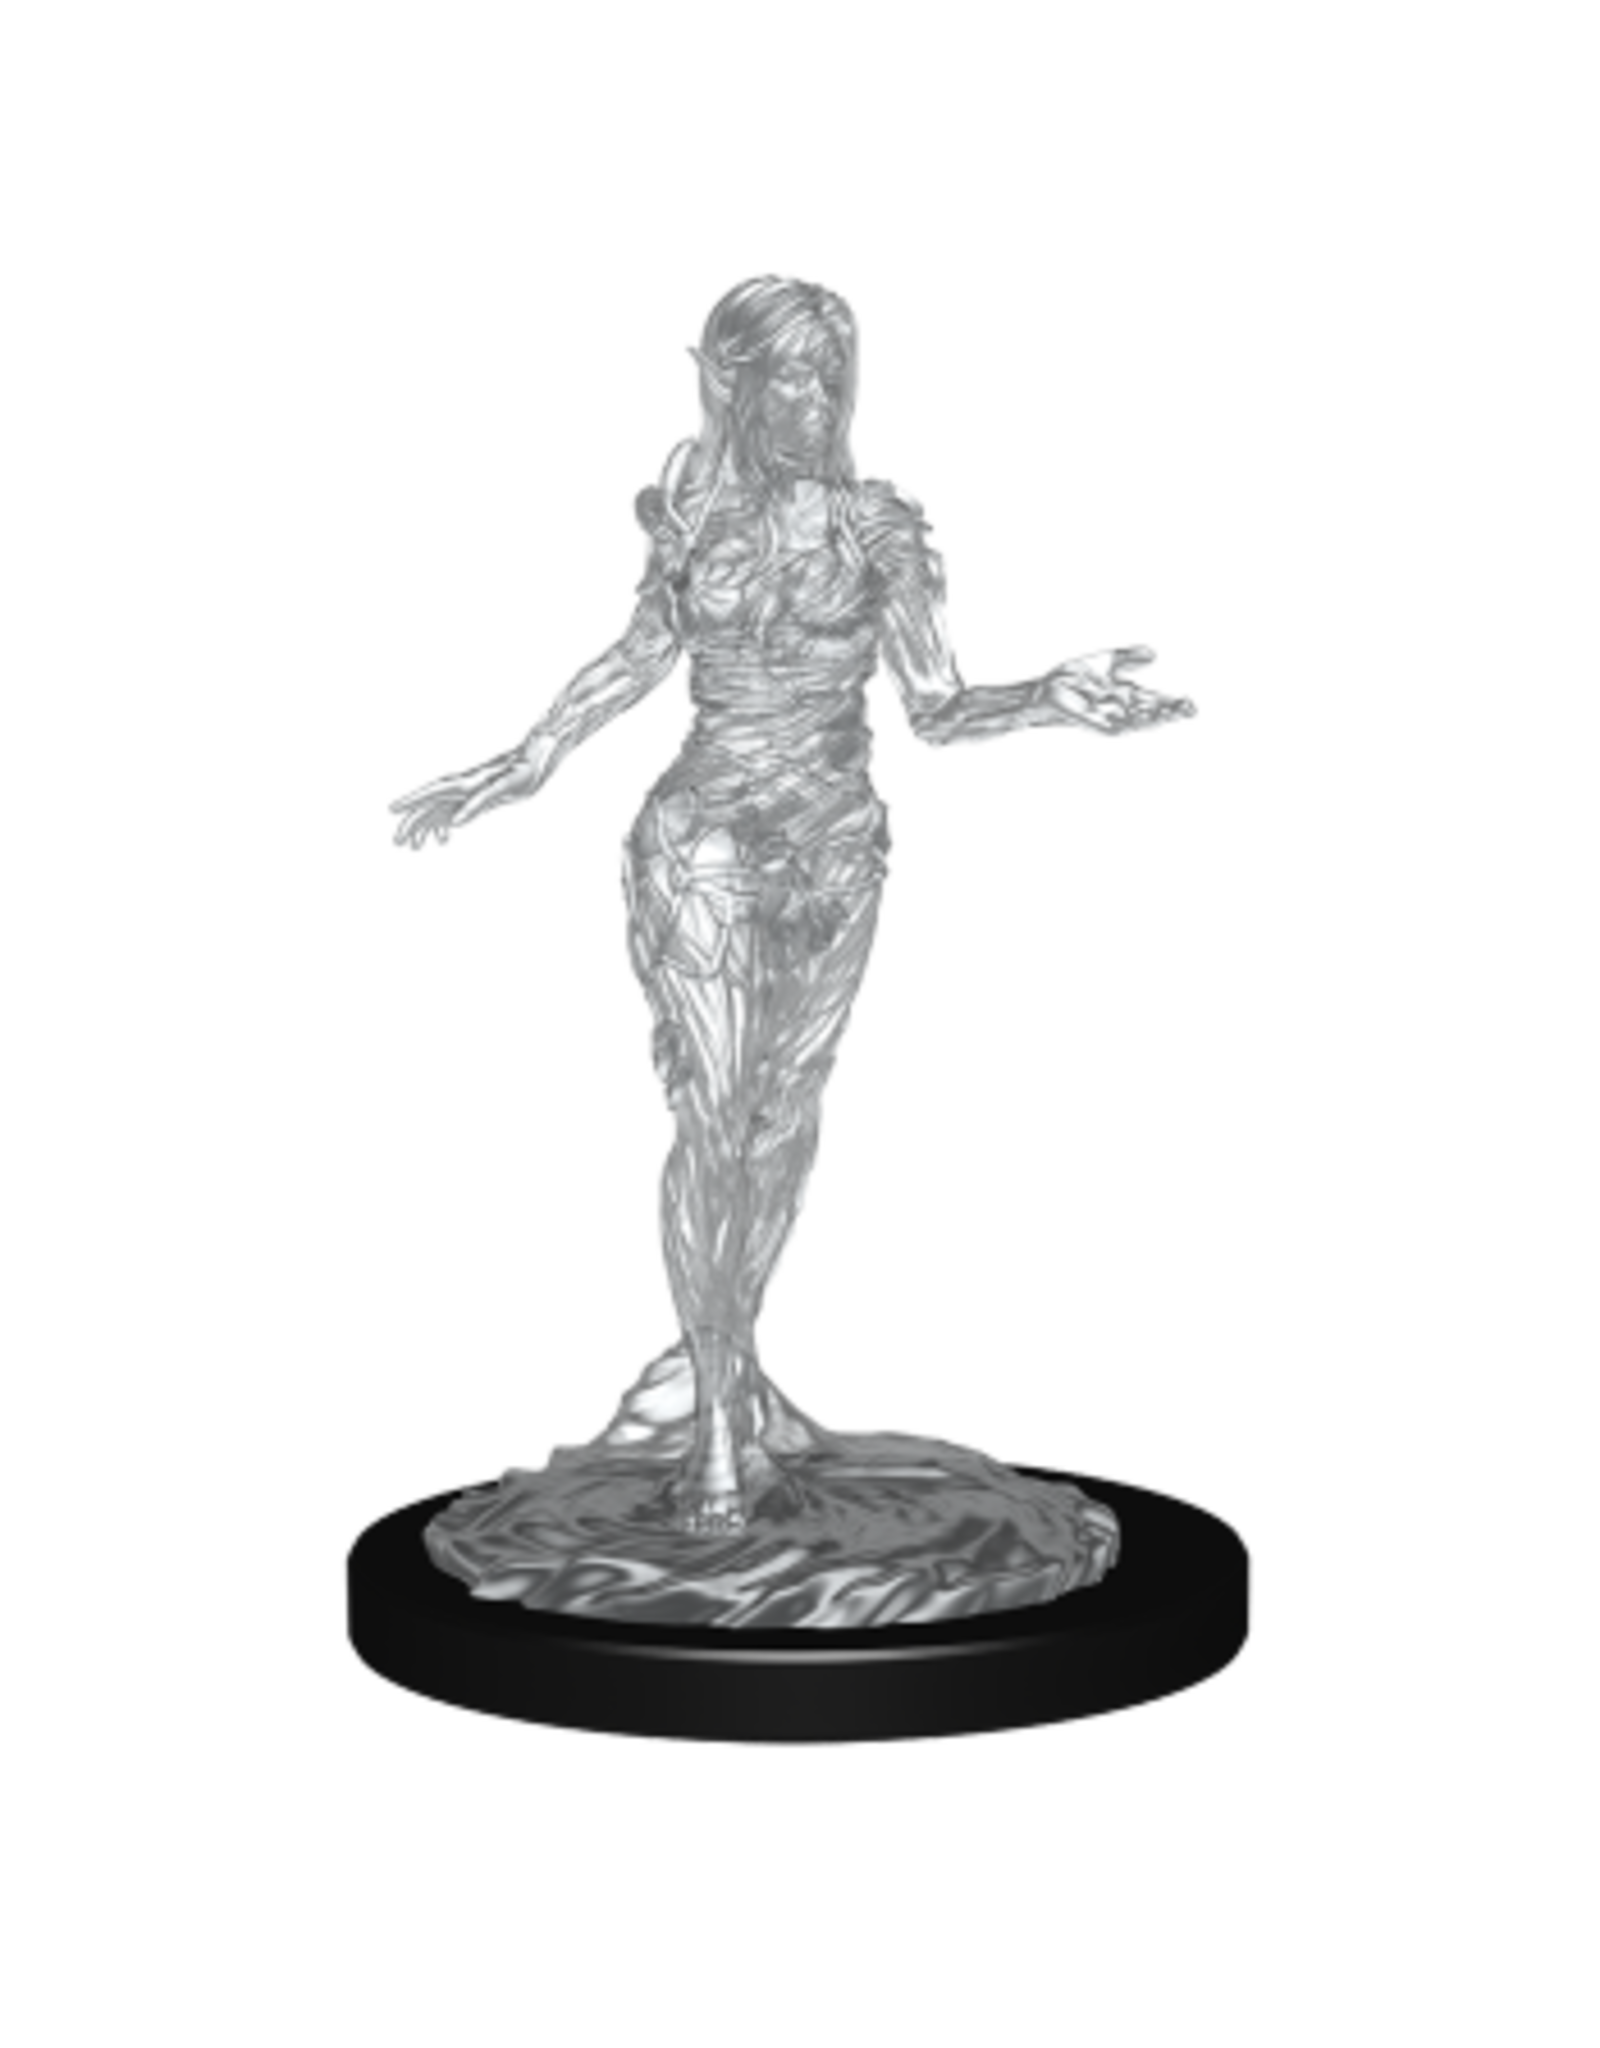 WizKids MTG Nymph and Dryad DnD Mini - Wave 14